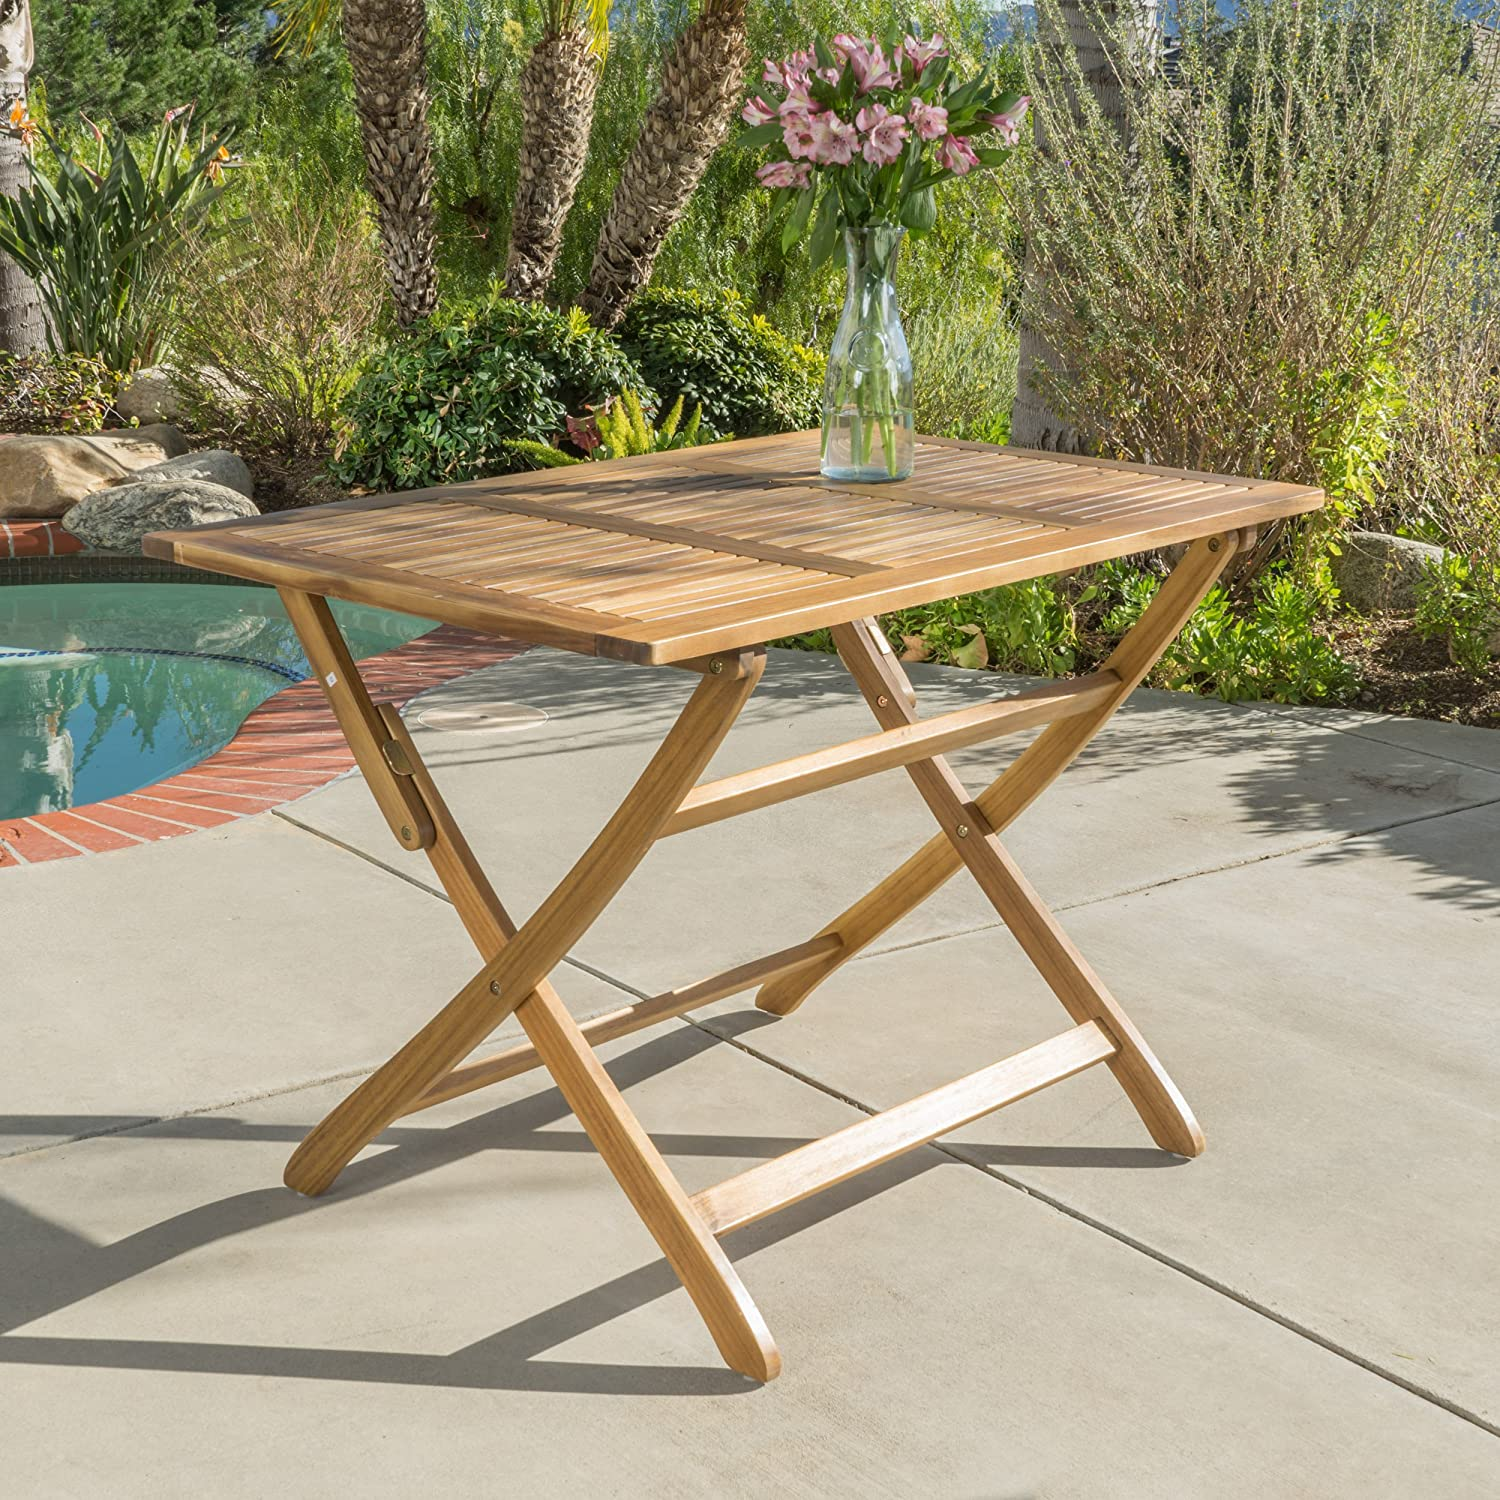 Amazon com st nevis acacia wood outdoor foldable dining table perfect for patio with natural finish garden outdoor